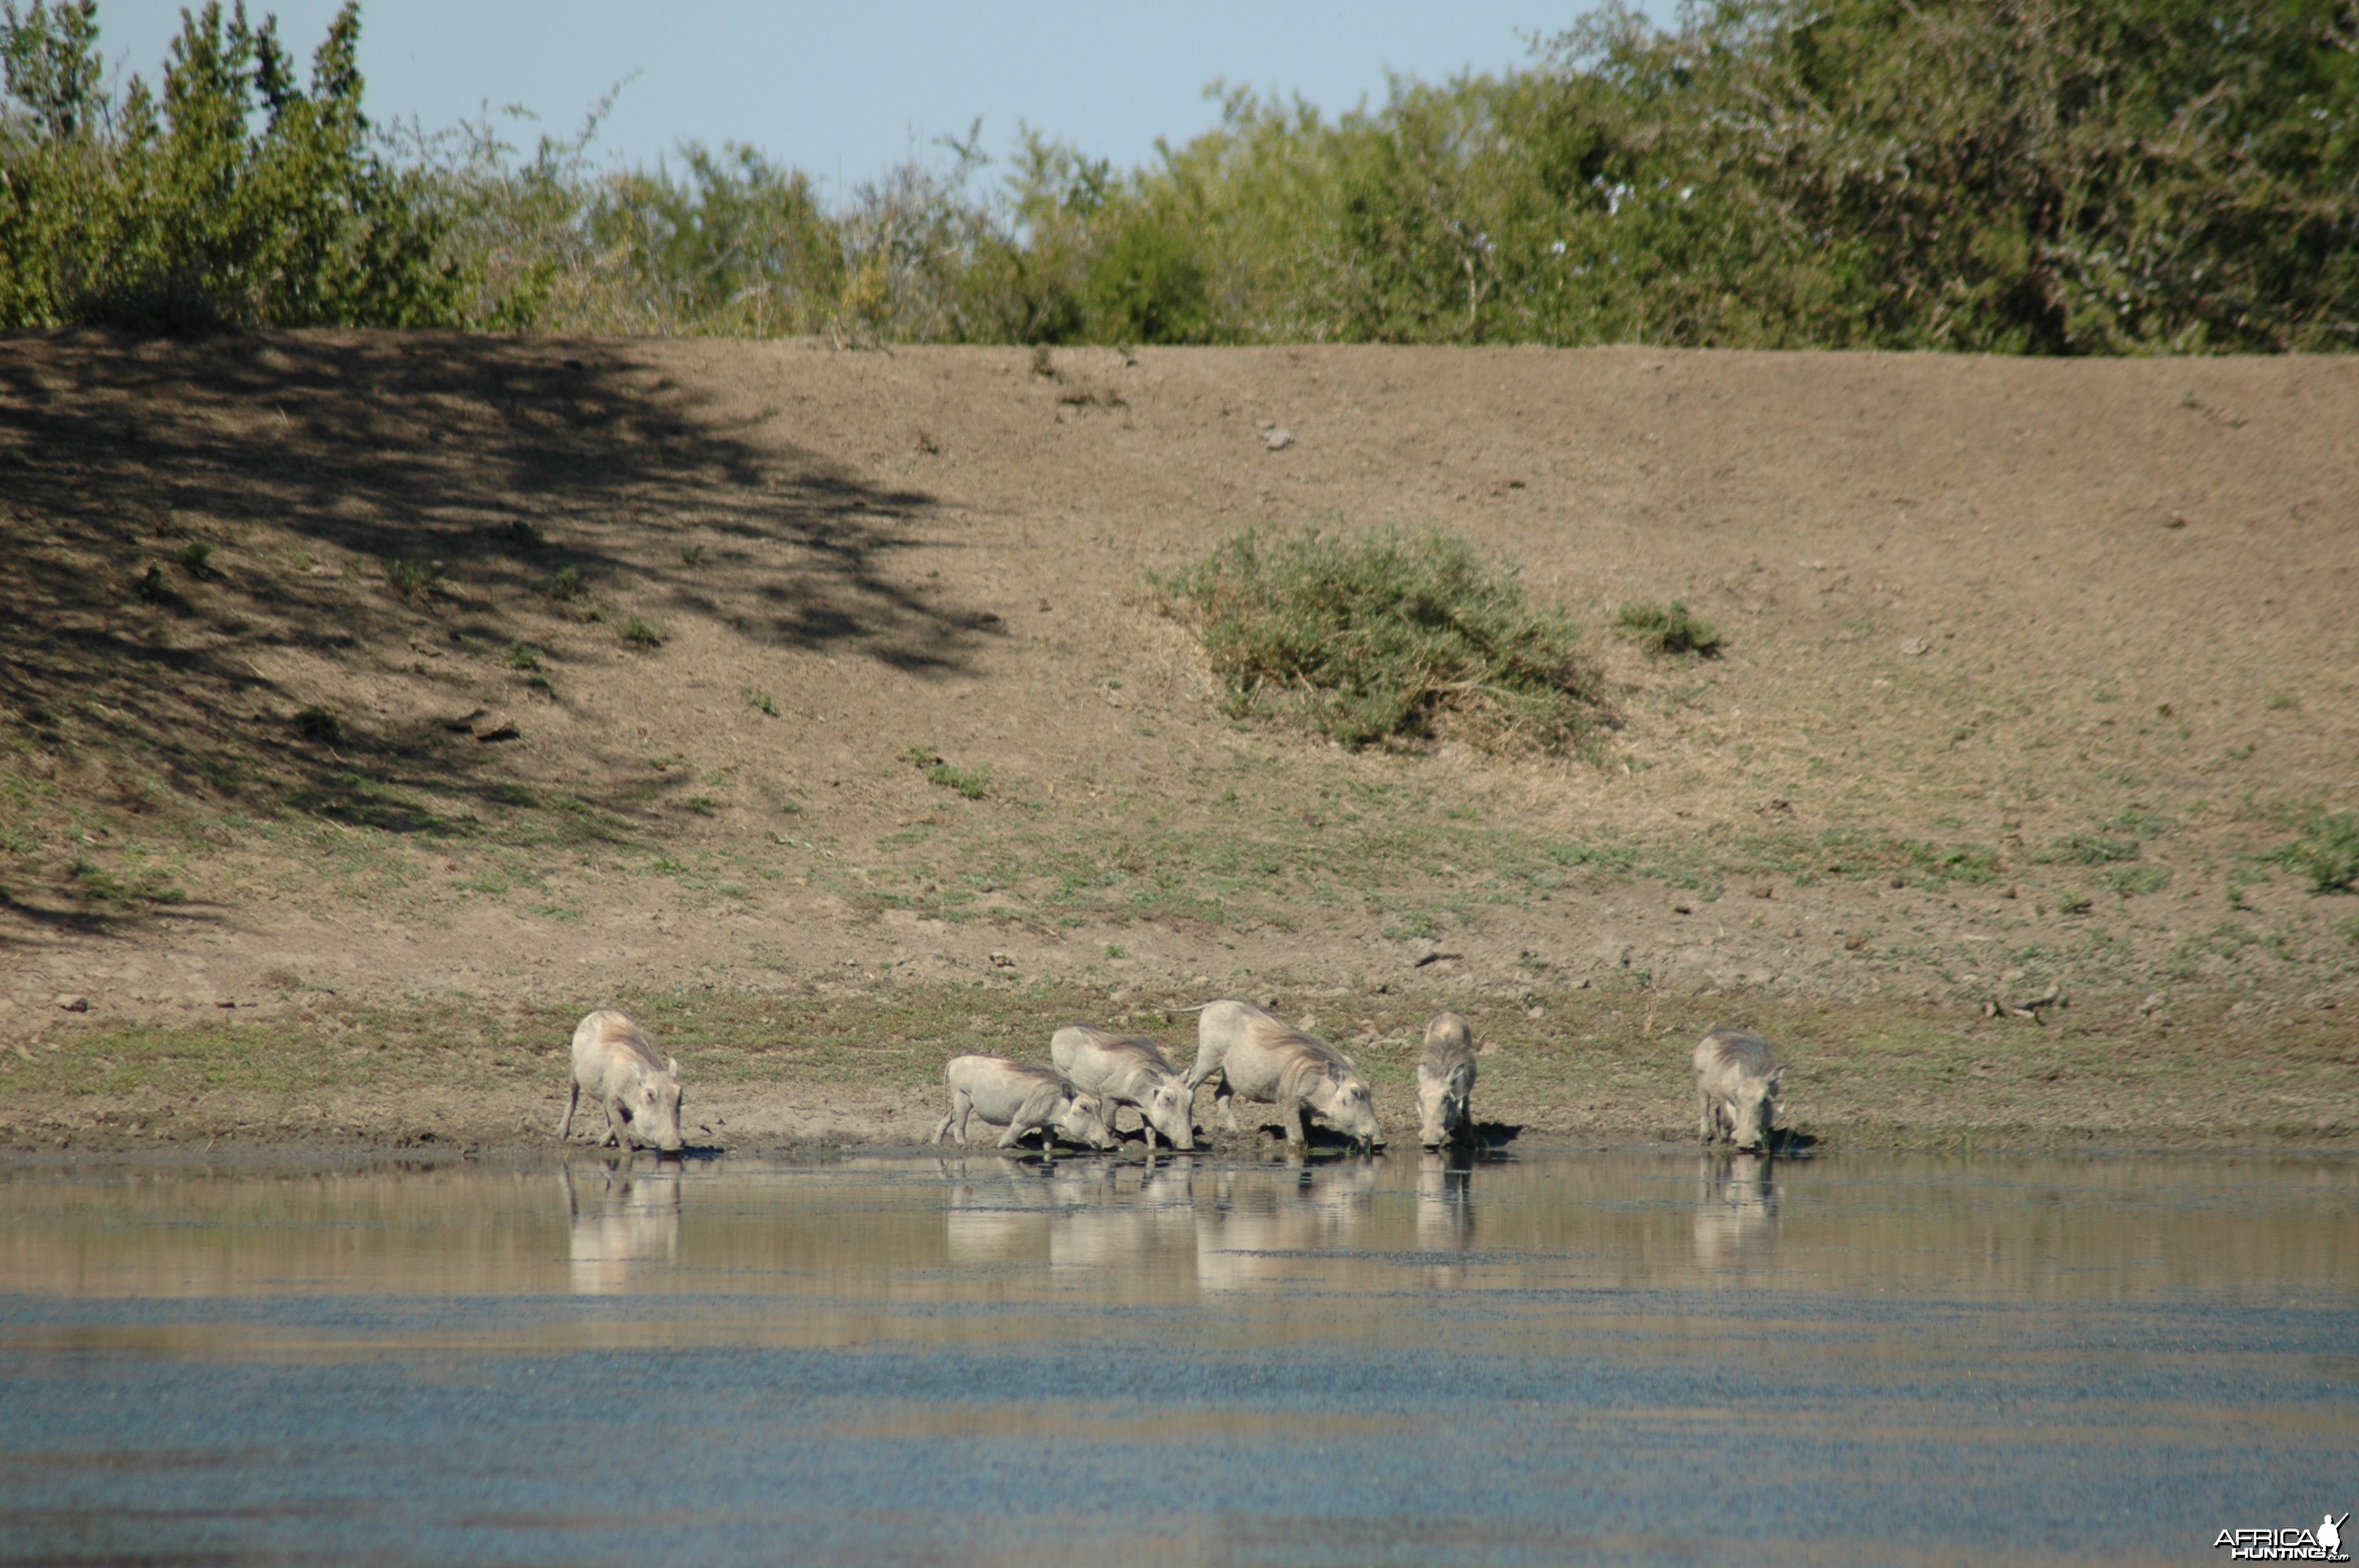 Warthogs at pond, Eastern Cape, South Africa